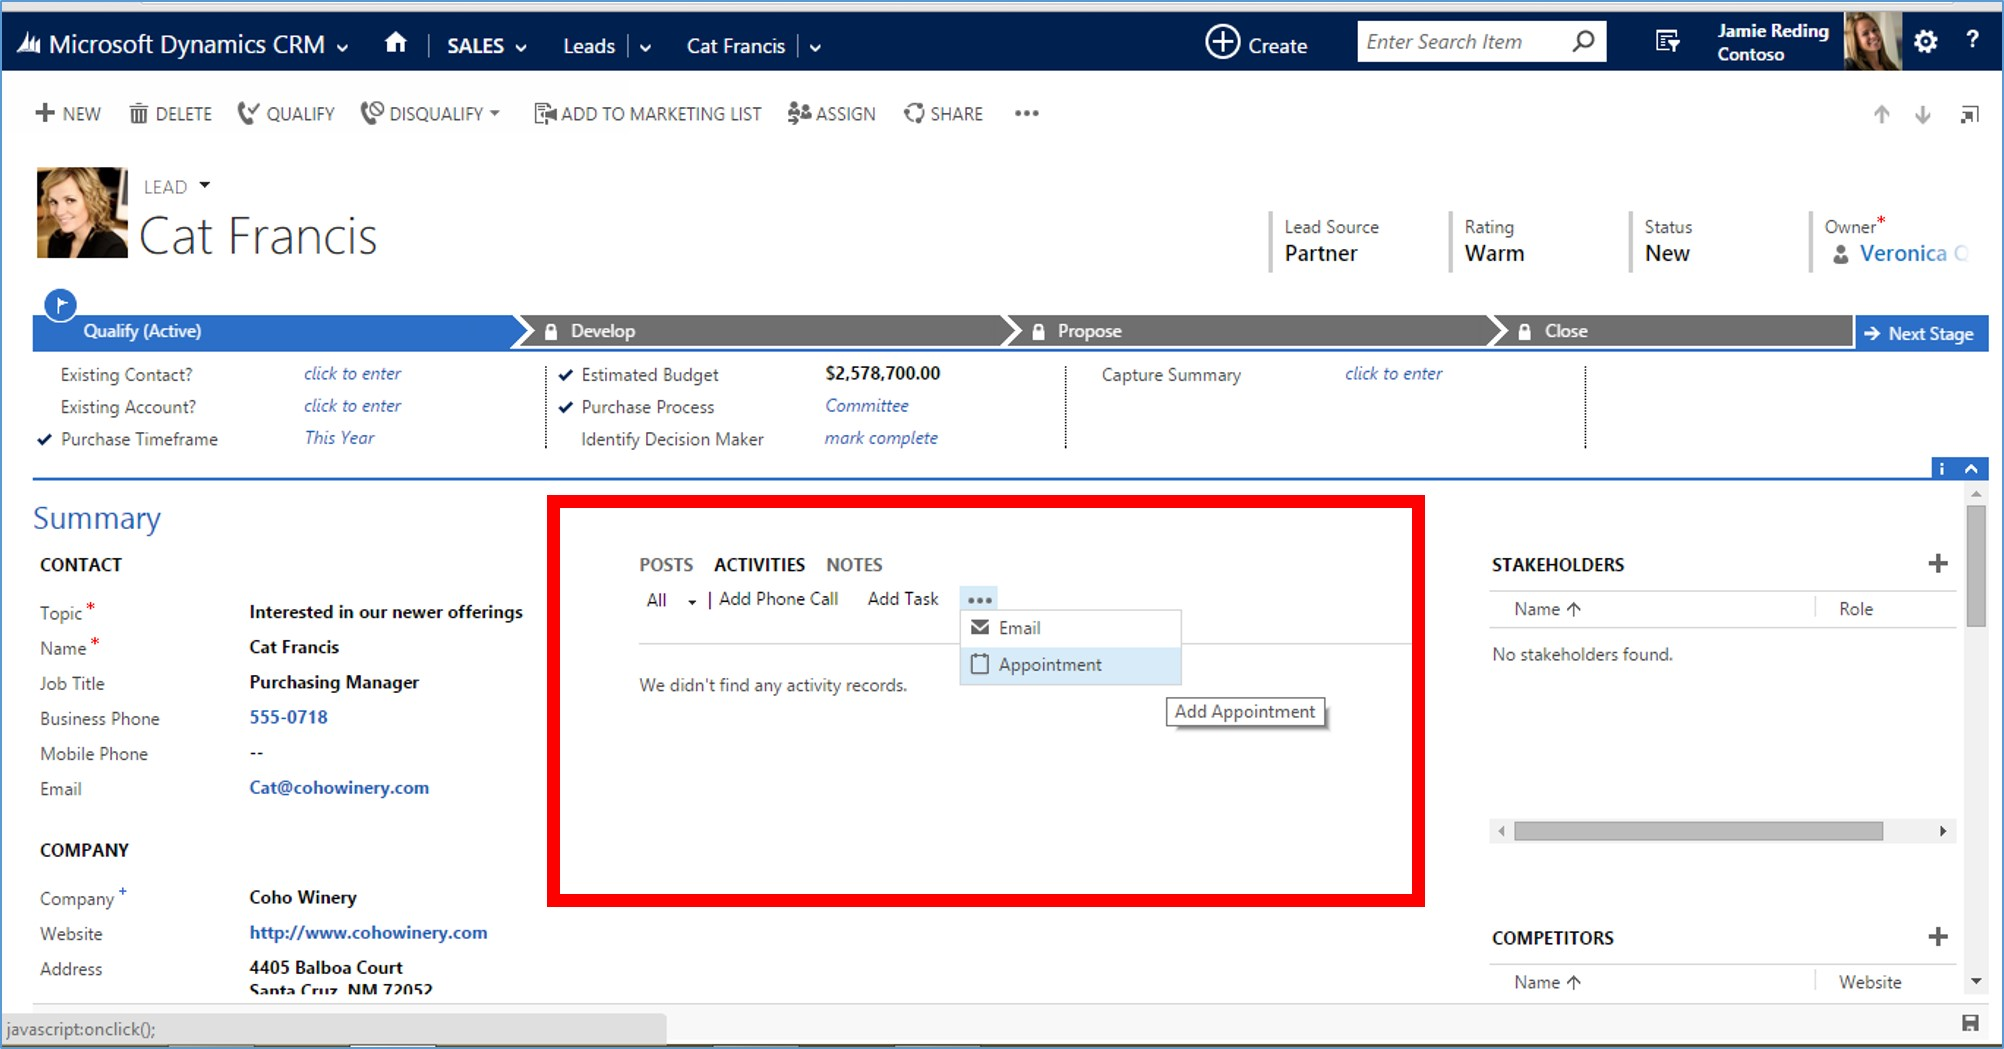 Microsoft Dynamics CRM 2015 Activity Records part 2 image3